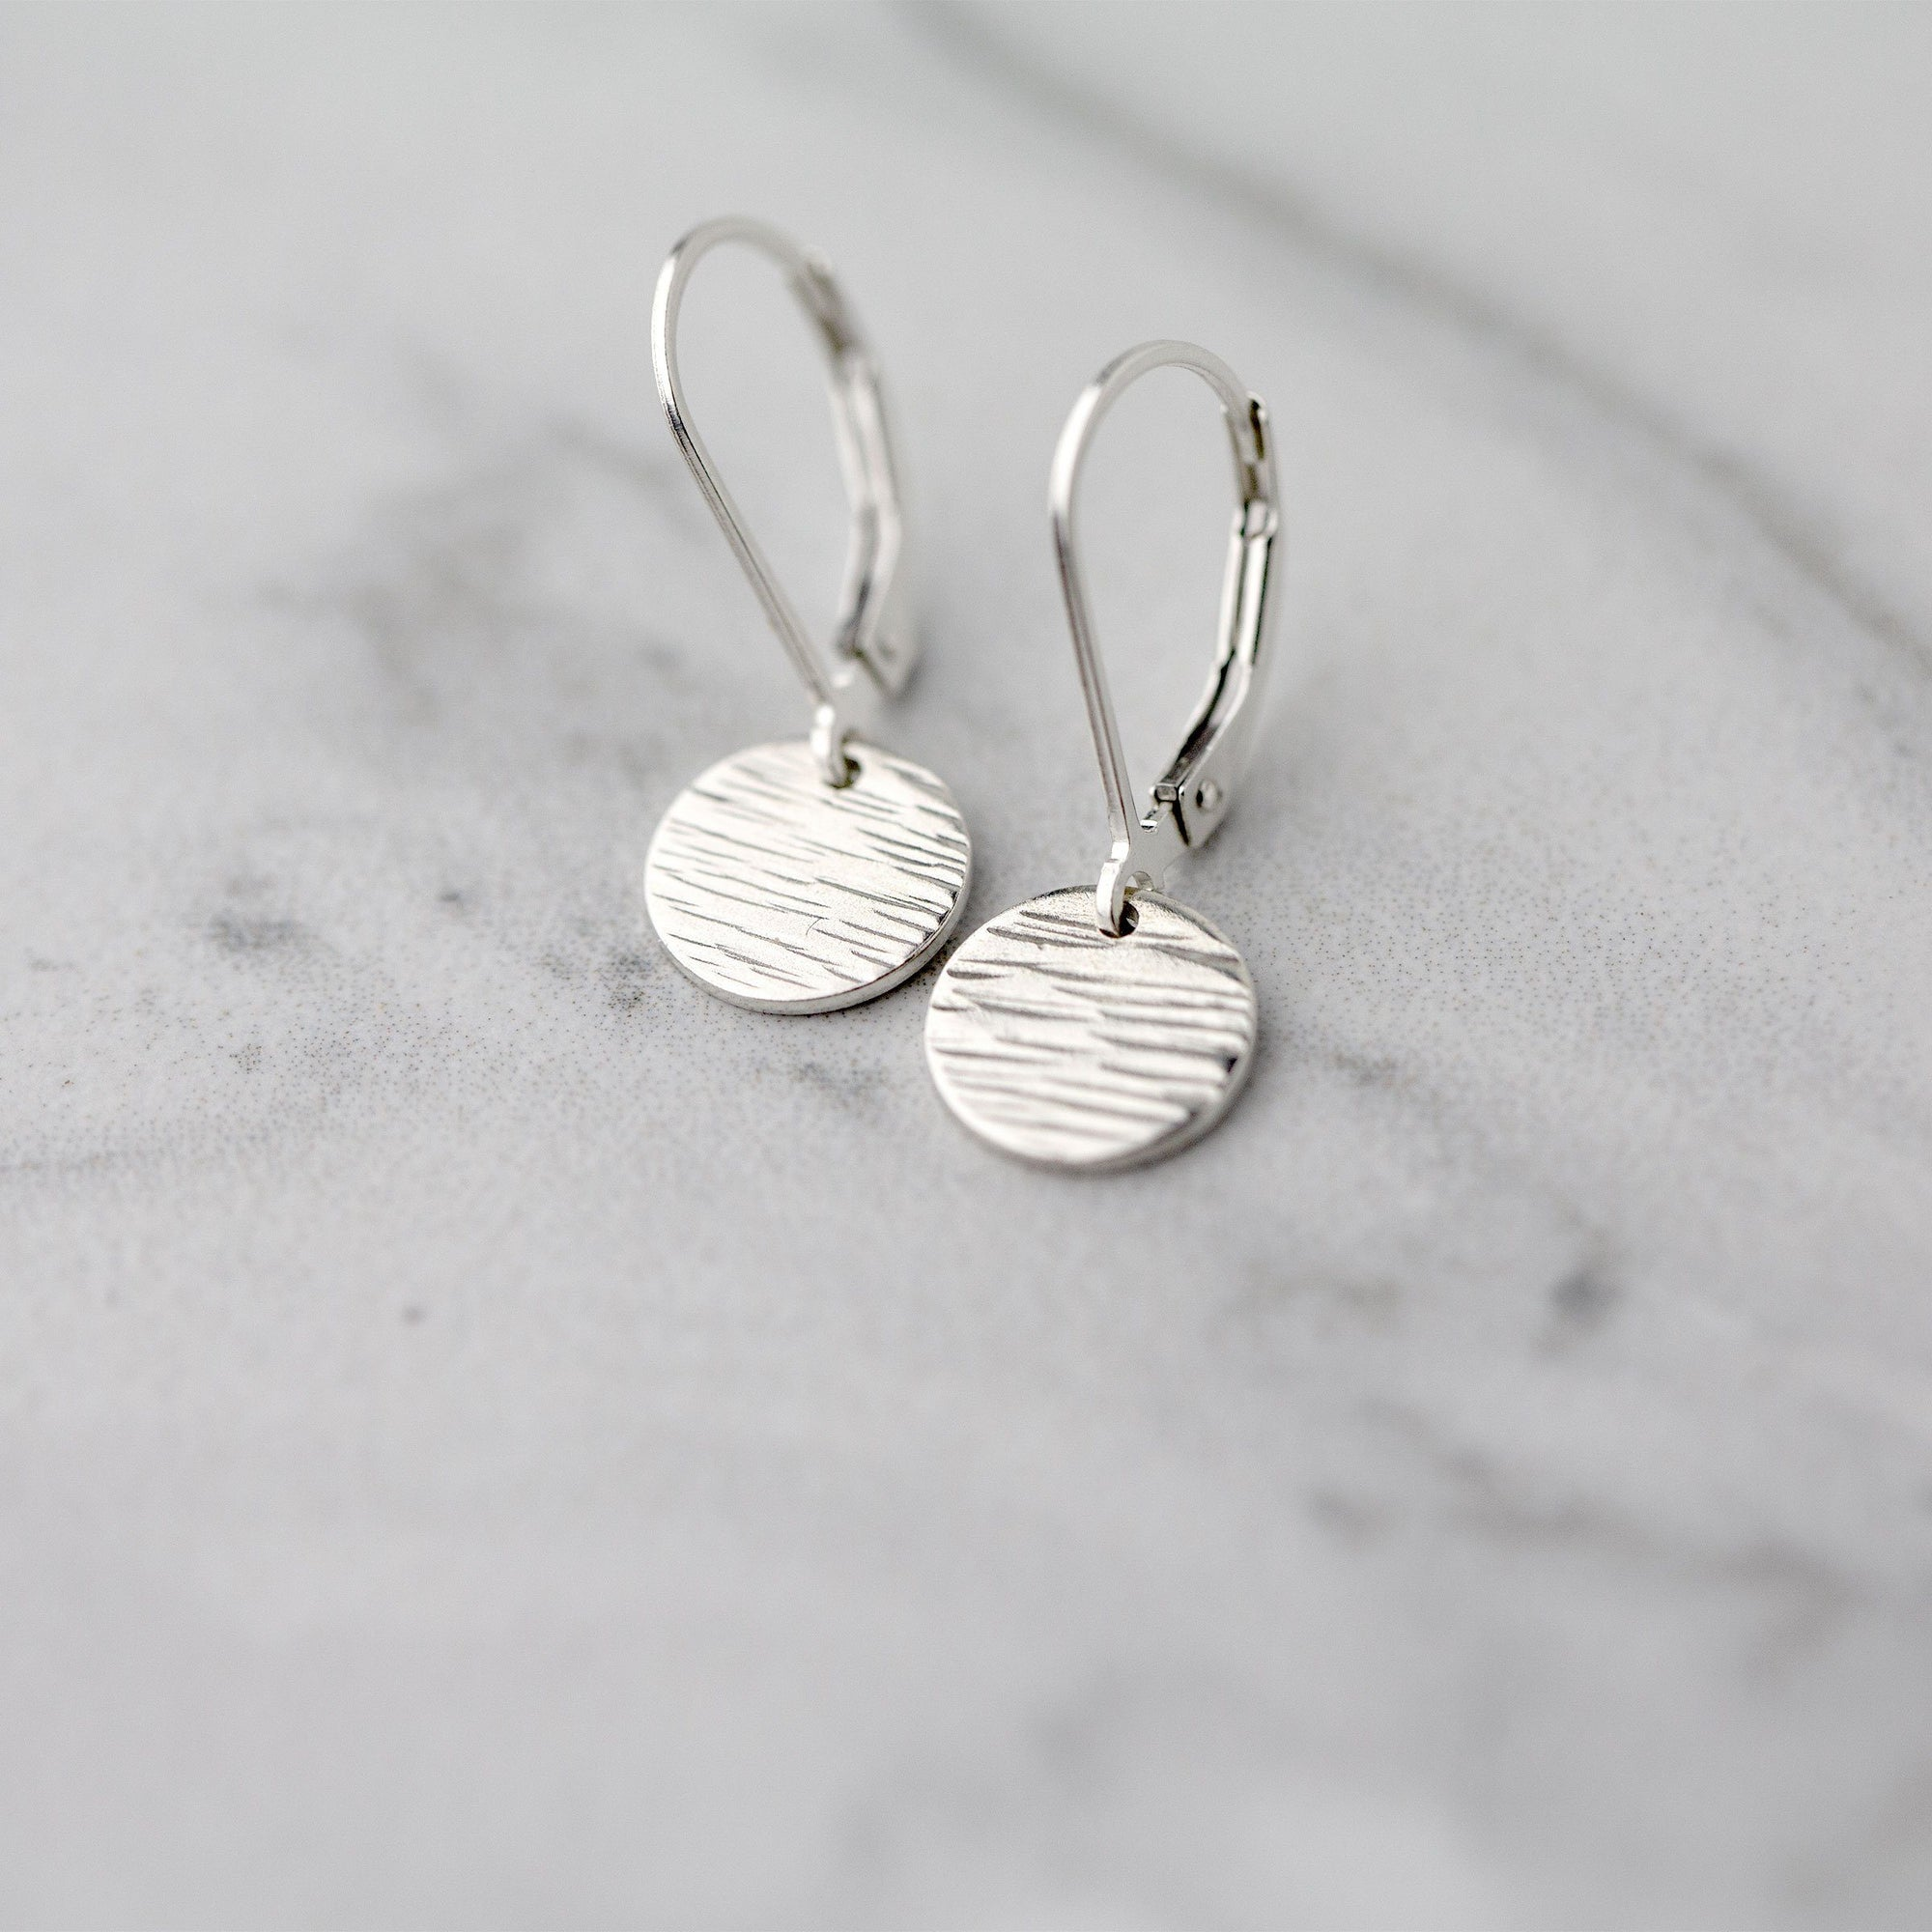 Silver Textured Disc Lever-back Earrings - Handmade Jewelry by Burnish